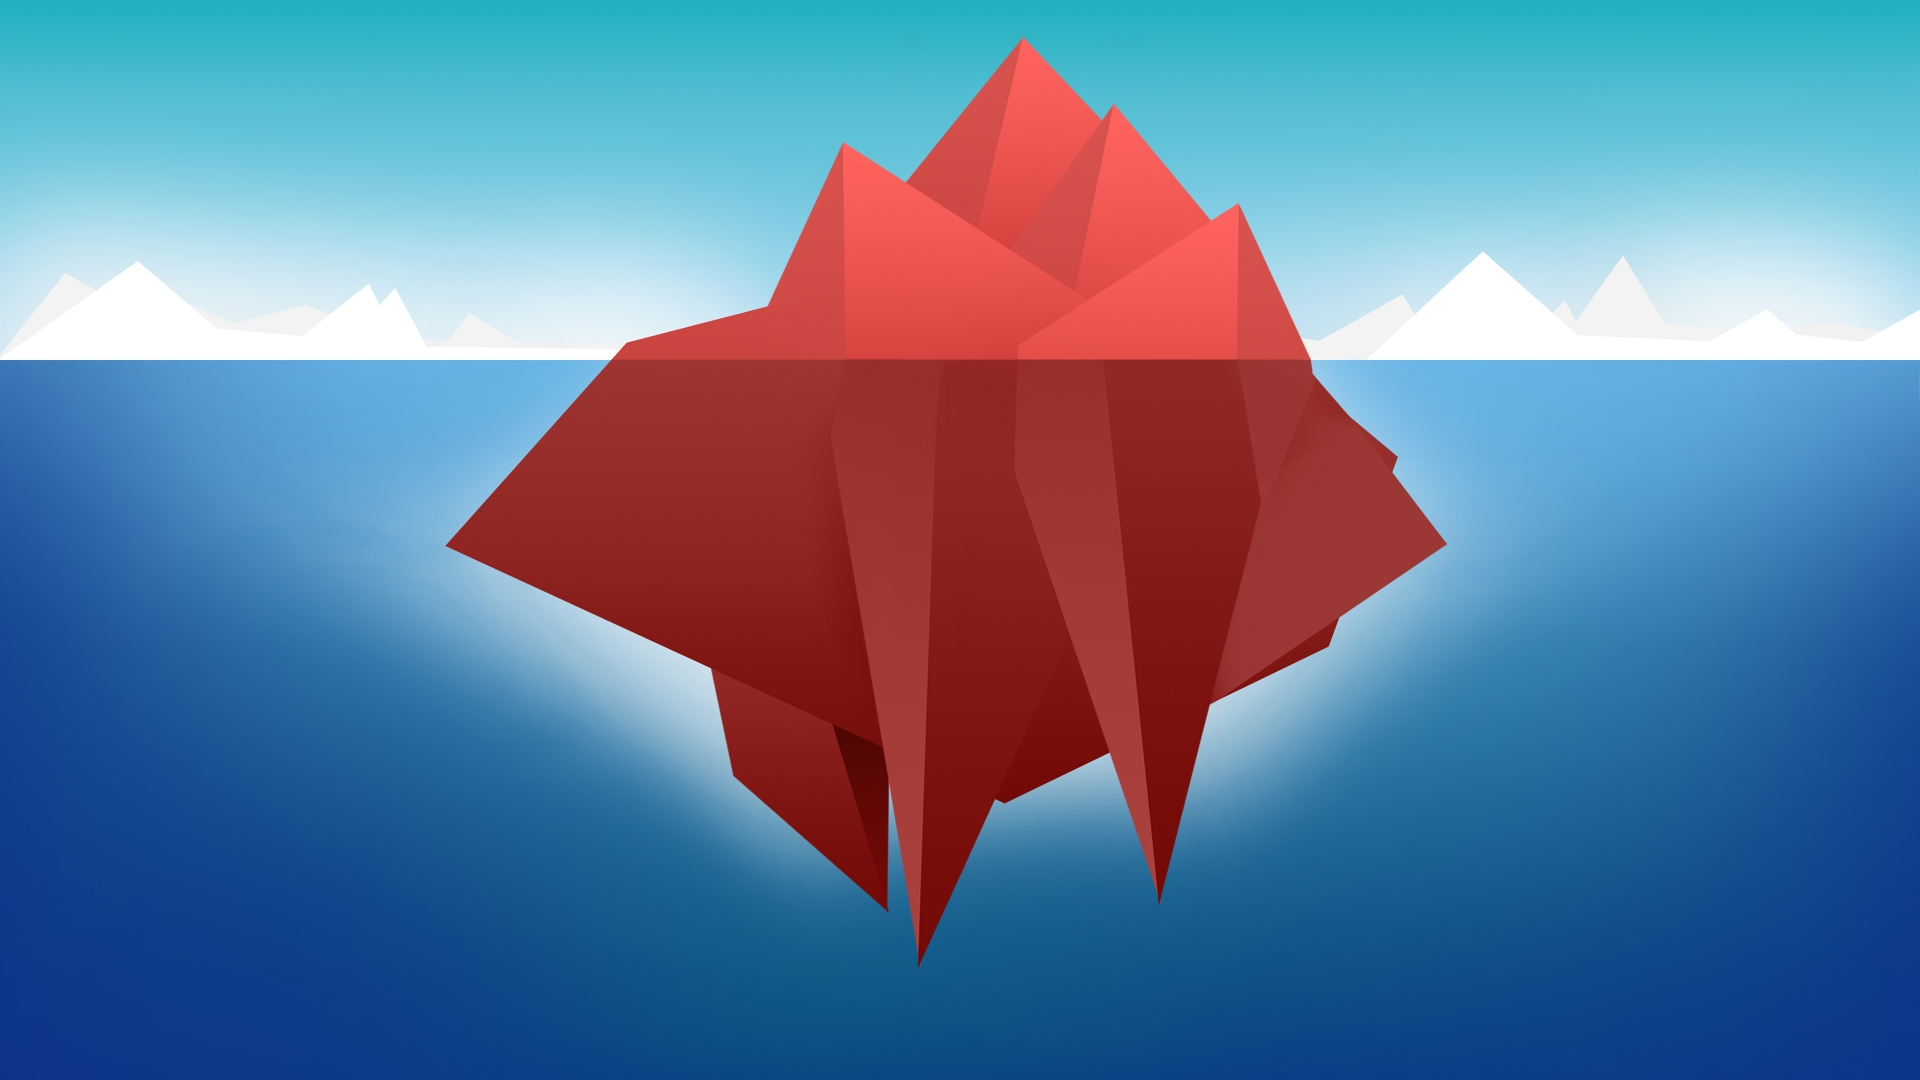 Red Minimal Iceberg for 1920 x 1080 HDTV 1080p resolution